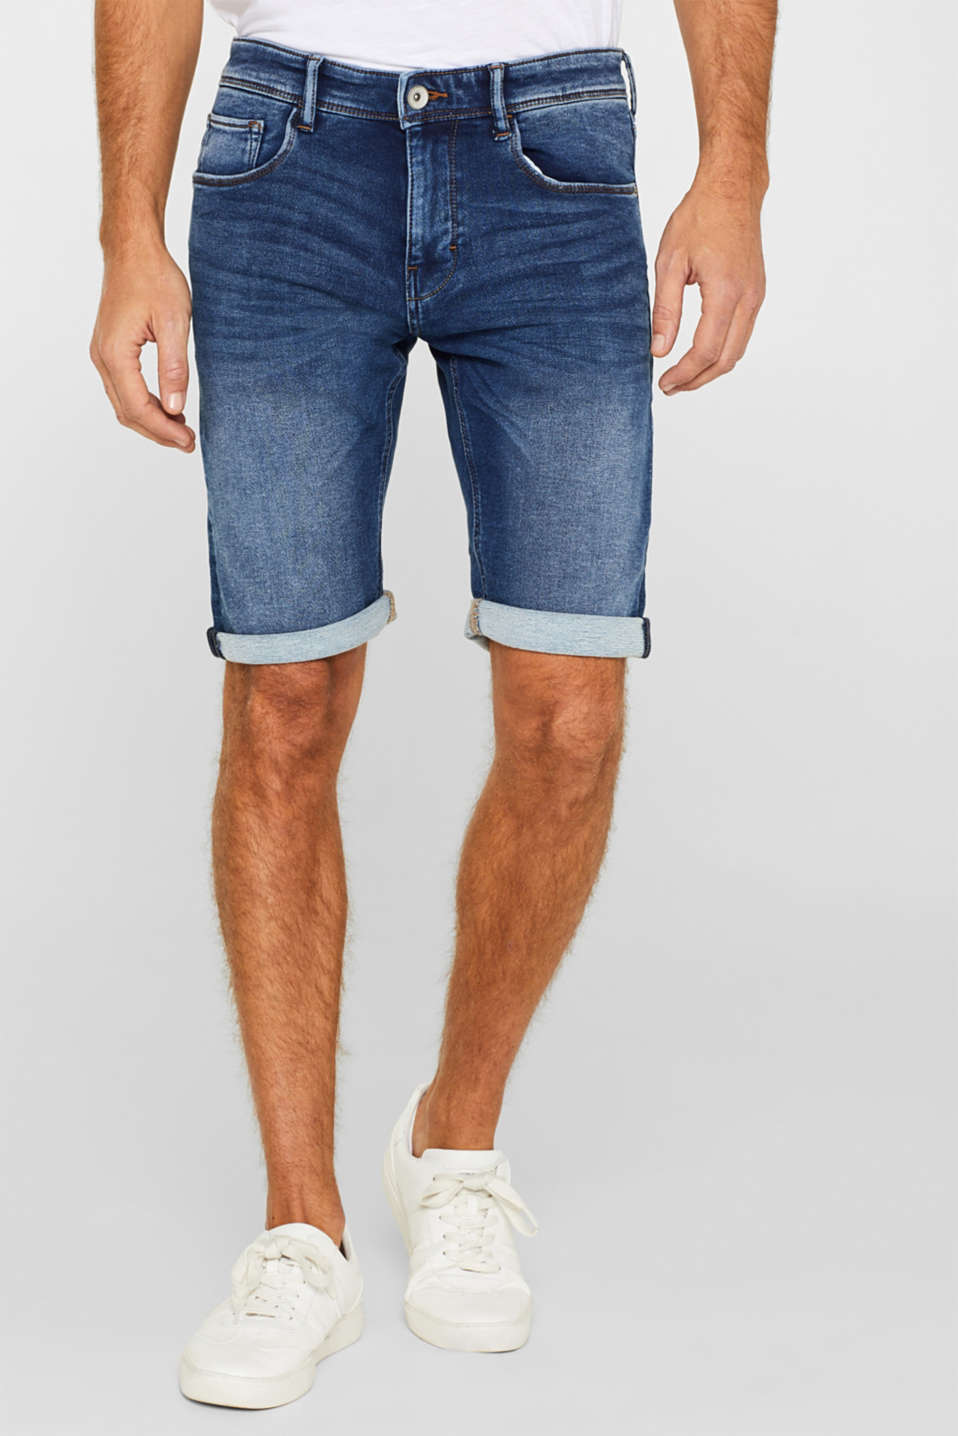 Esprit - Shorts in denim super stretch stile jogger